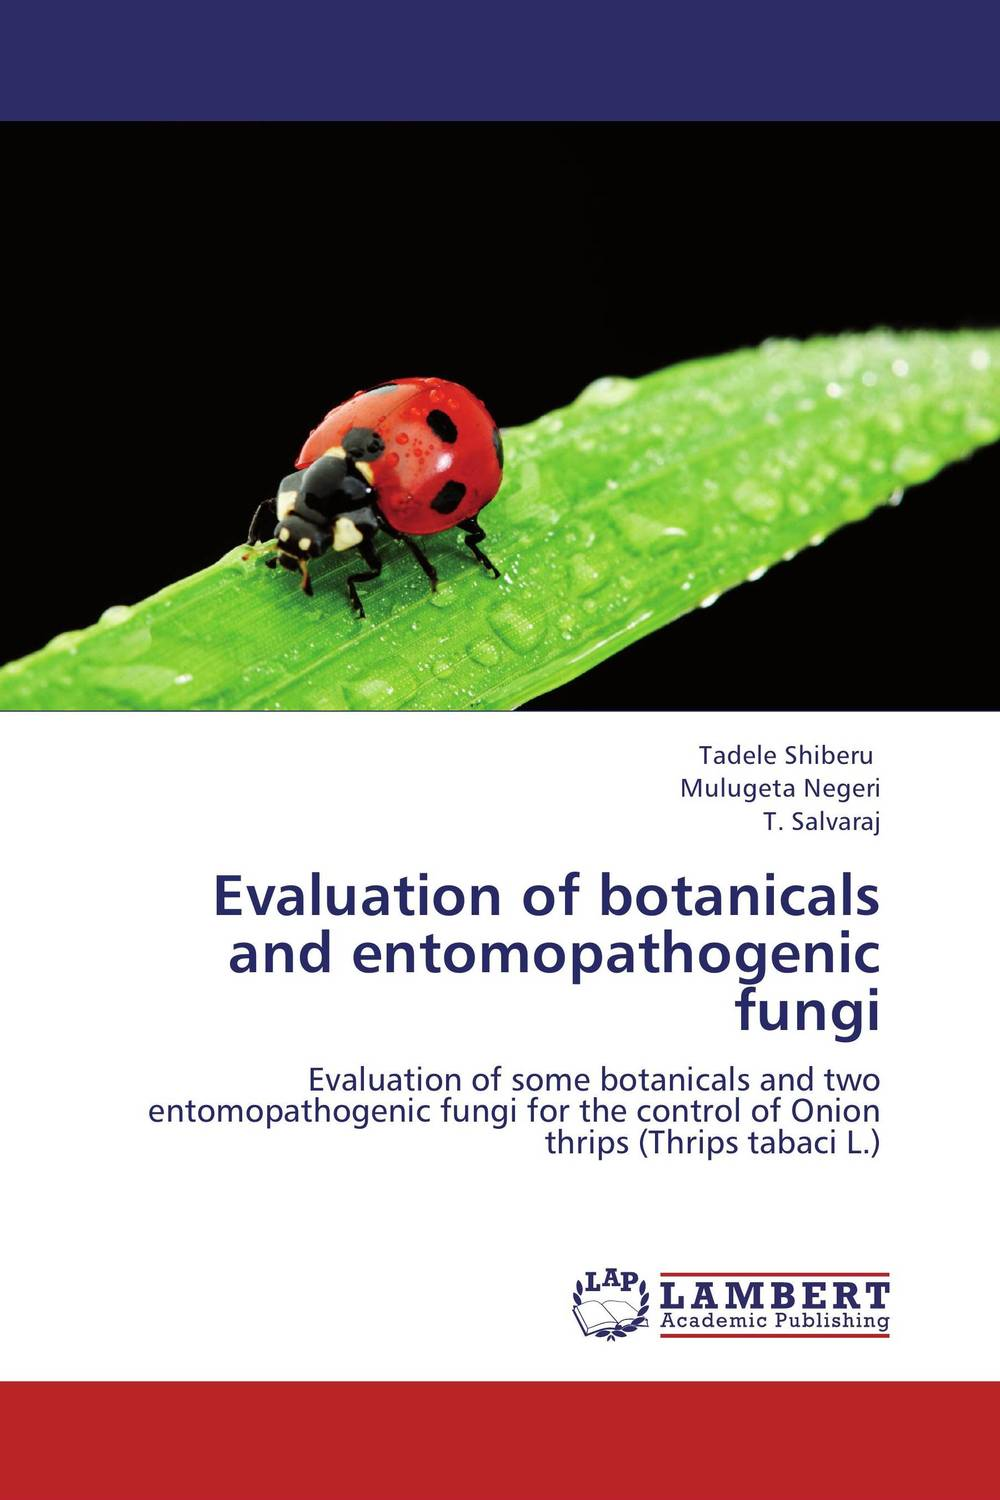 Evaluation of botanicals and entomopathogenic fungi evaluation and developing an onion peeling system